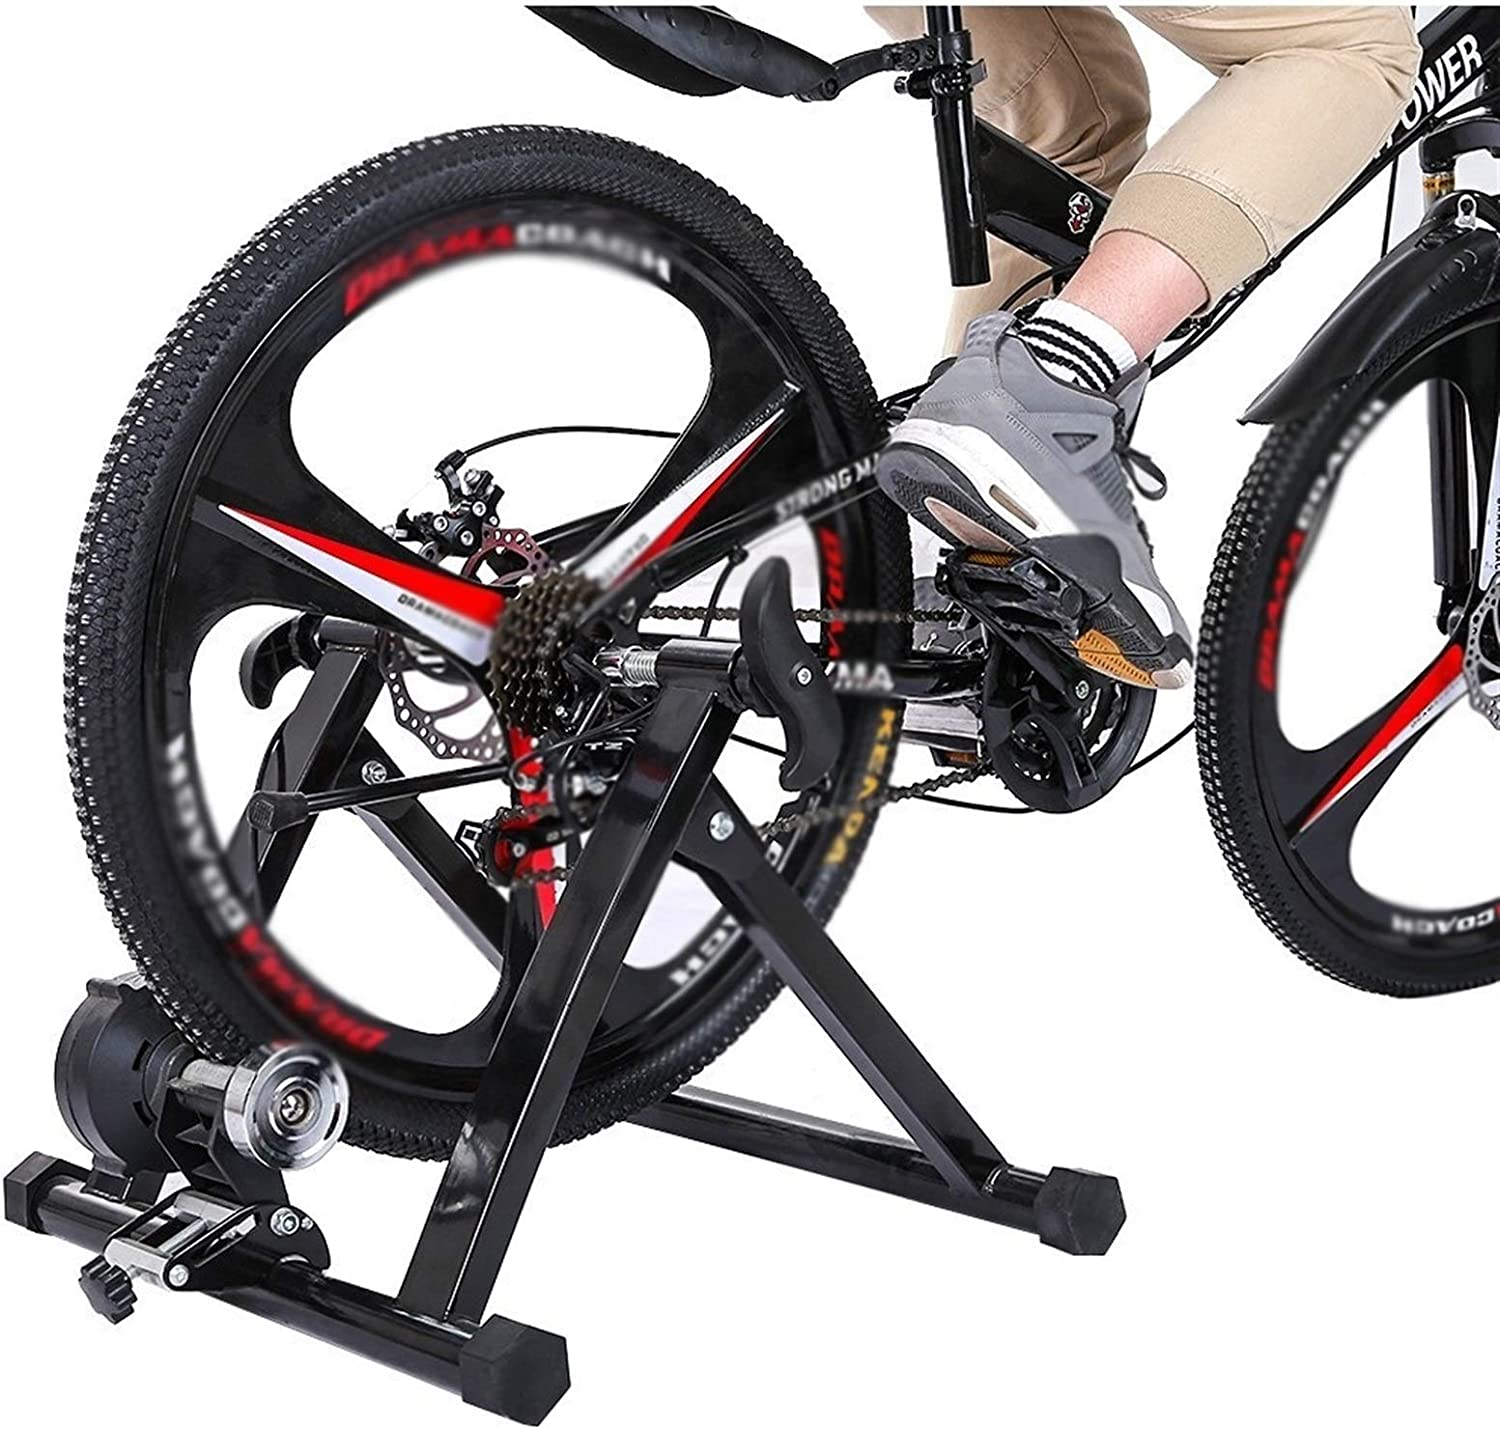 YANGLIYU Indoor Exercise Bike Trainer 6 Home Speed Magn Training Limited time Max 78% OFF trial price